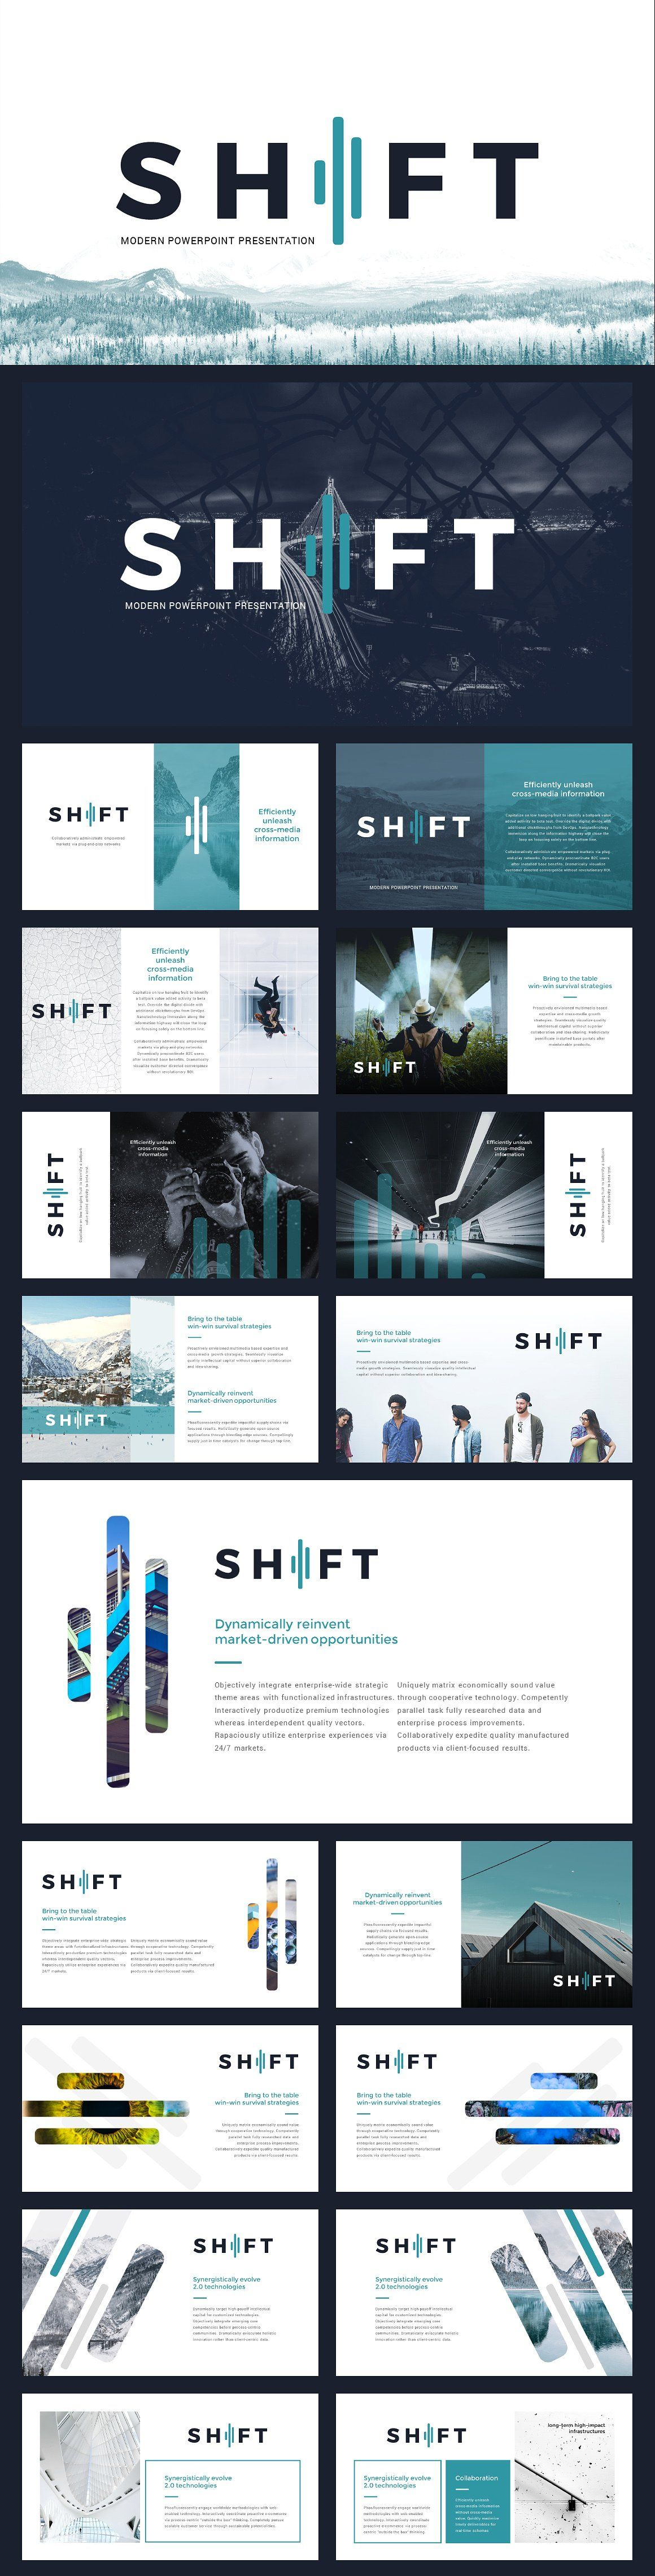 shift modern powerpoint templatereshapely on @creativemarket, Presentation templates